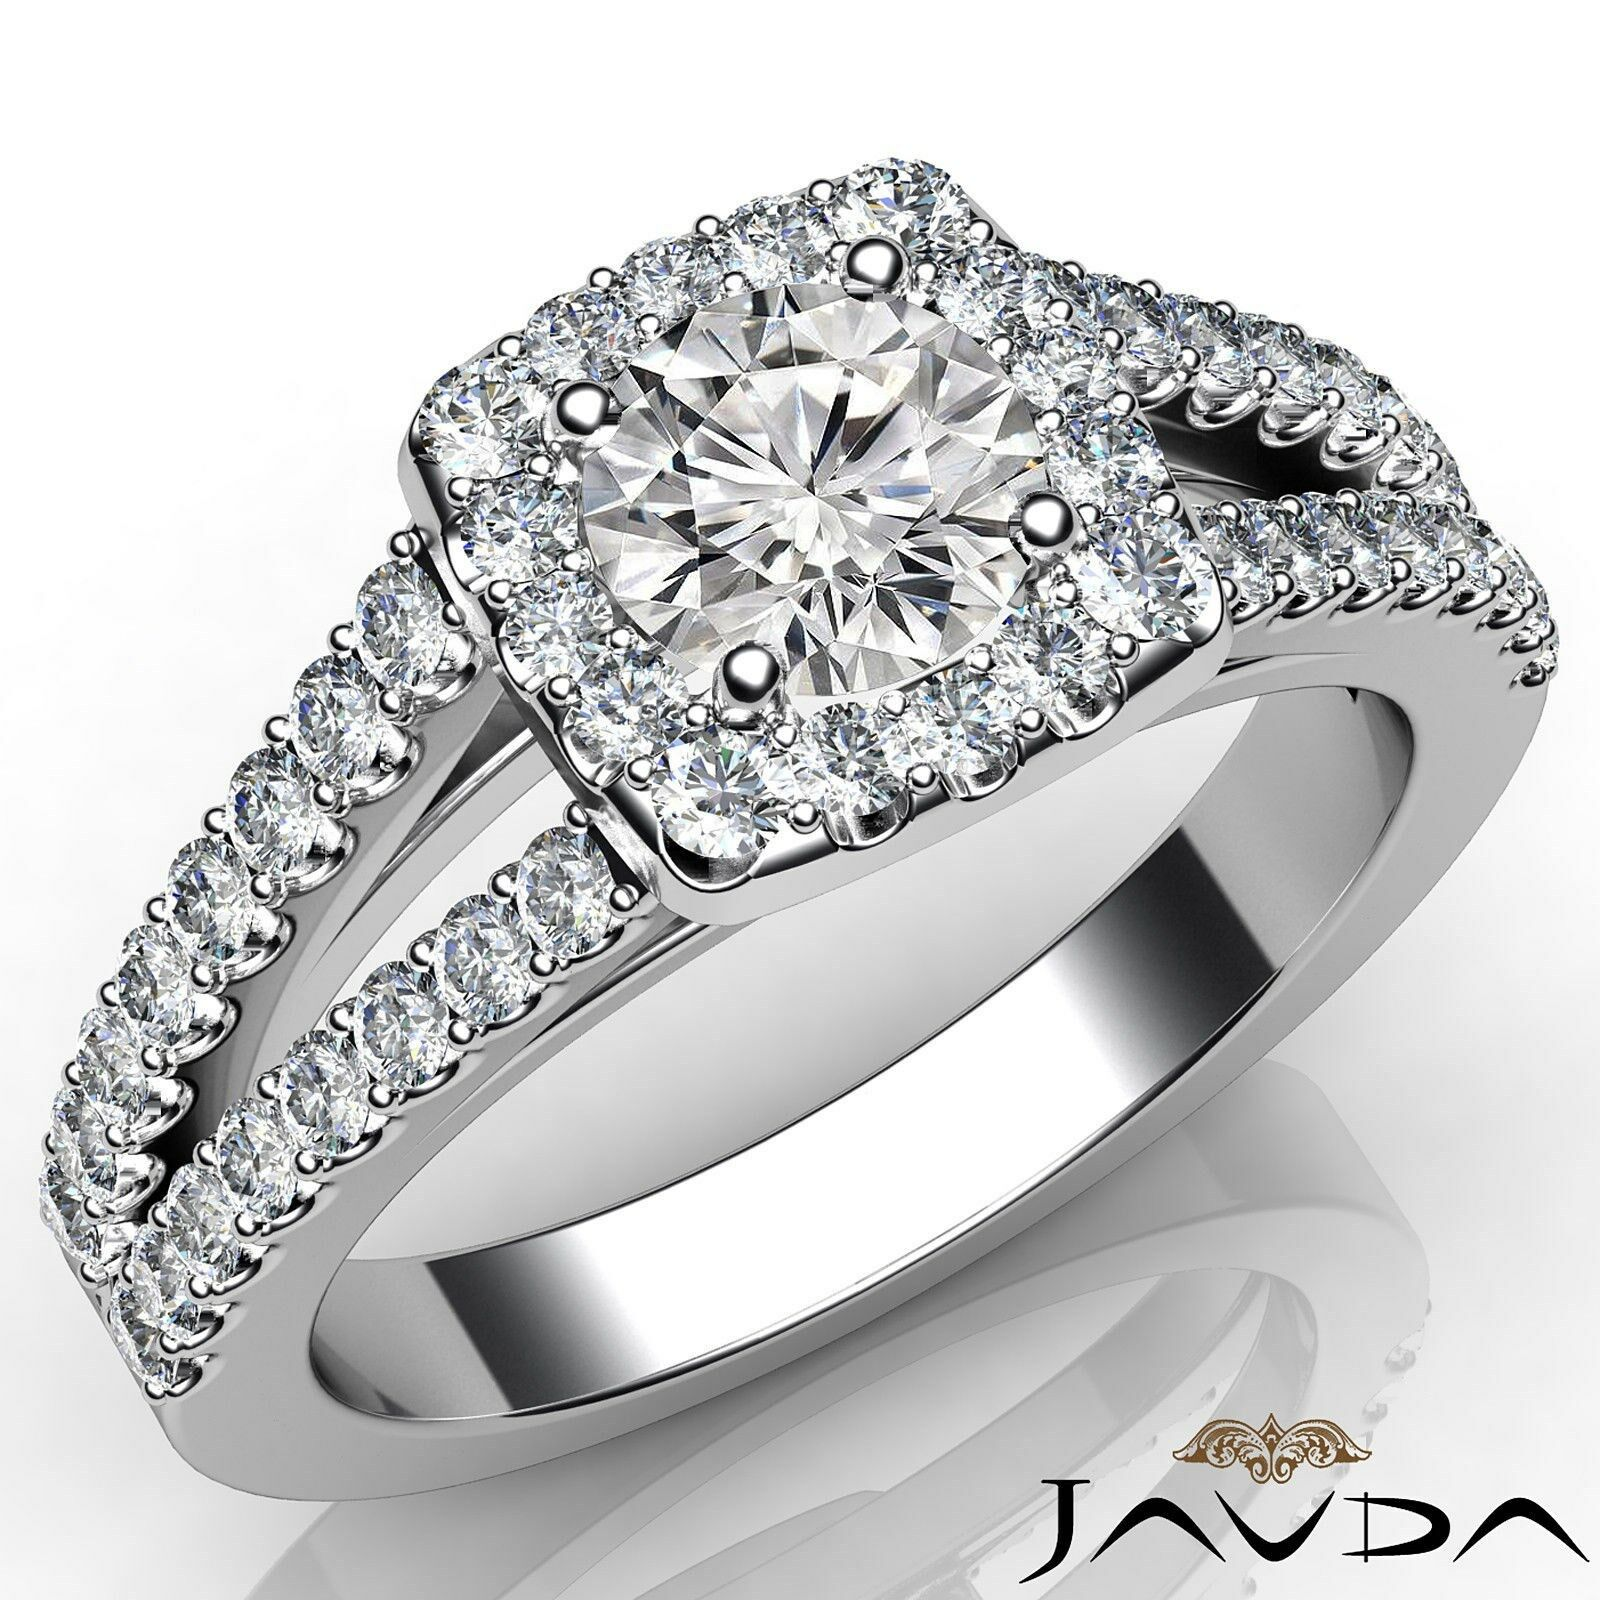 Halo Split Shank Round Diamond Engagement French Pave Ring GIA F VS2 1 1/4 Ct.